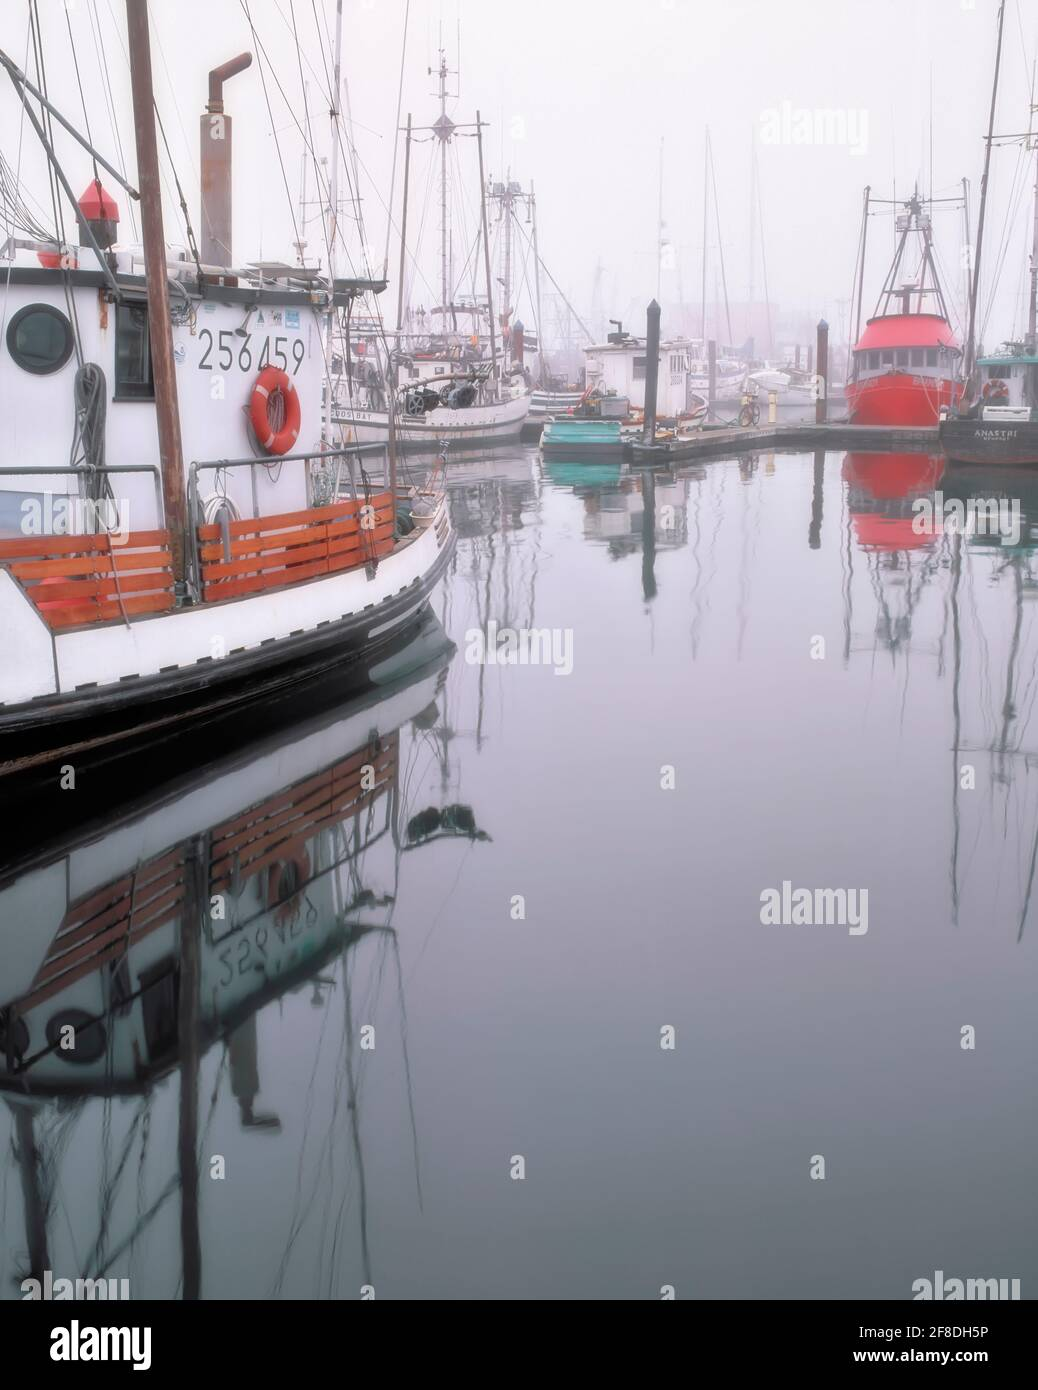 Lifting of morning fog reveals the commercial fishing fleet at Charleston Harbor on Oregon's southern coastline near Coos Bay. Stock Photo